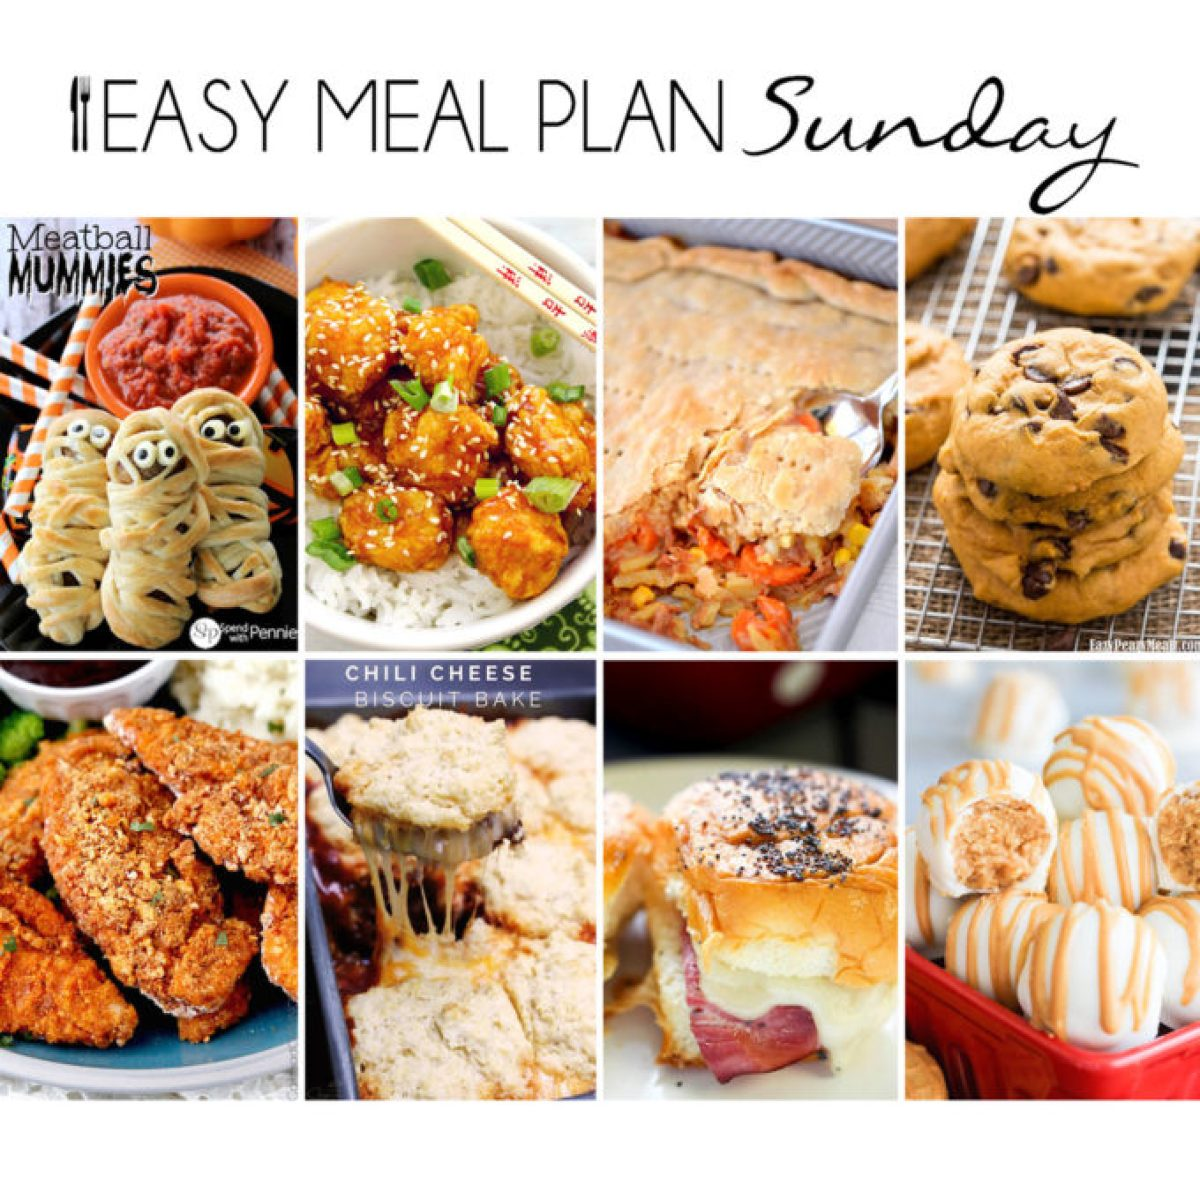 Easy meal plan Sunday is an amazing meal plan, making life easier.